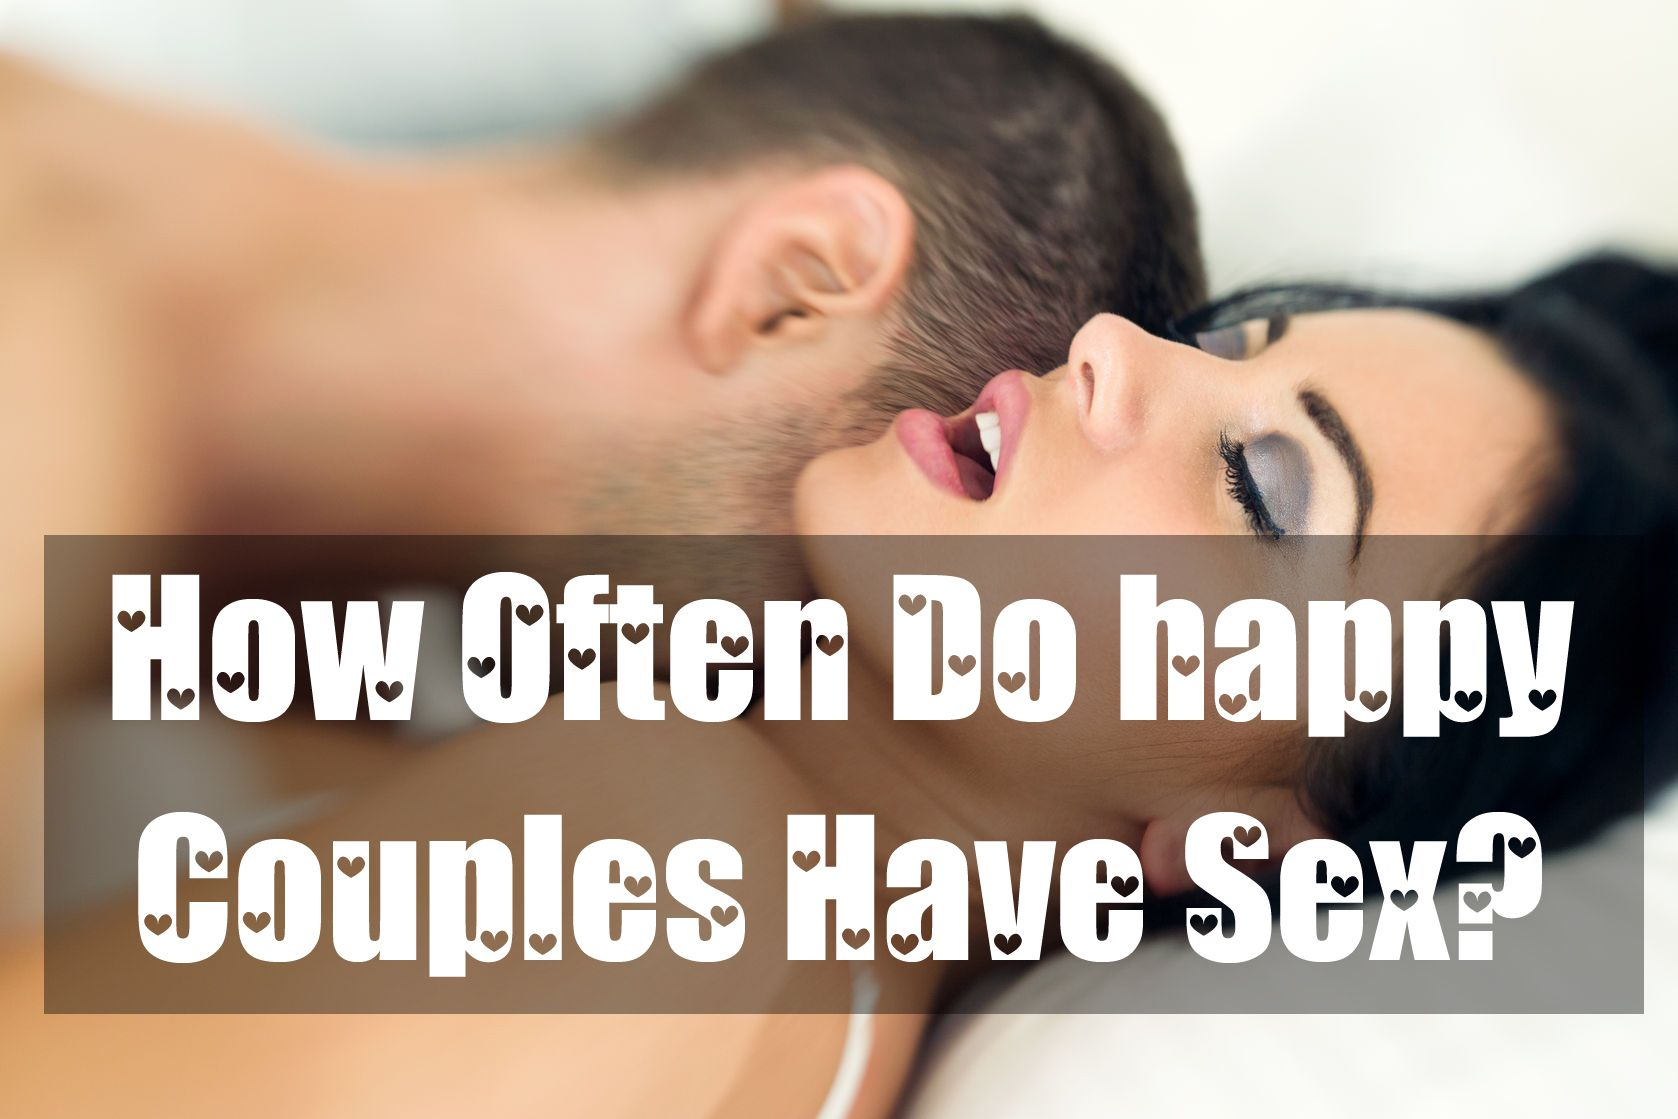 How often do dating couples have sex